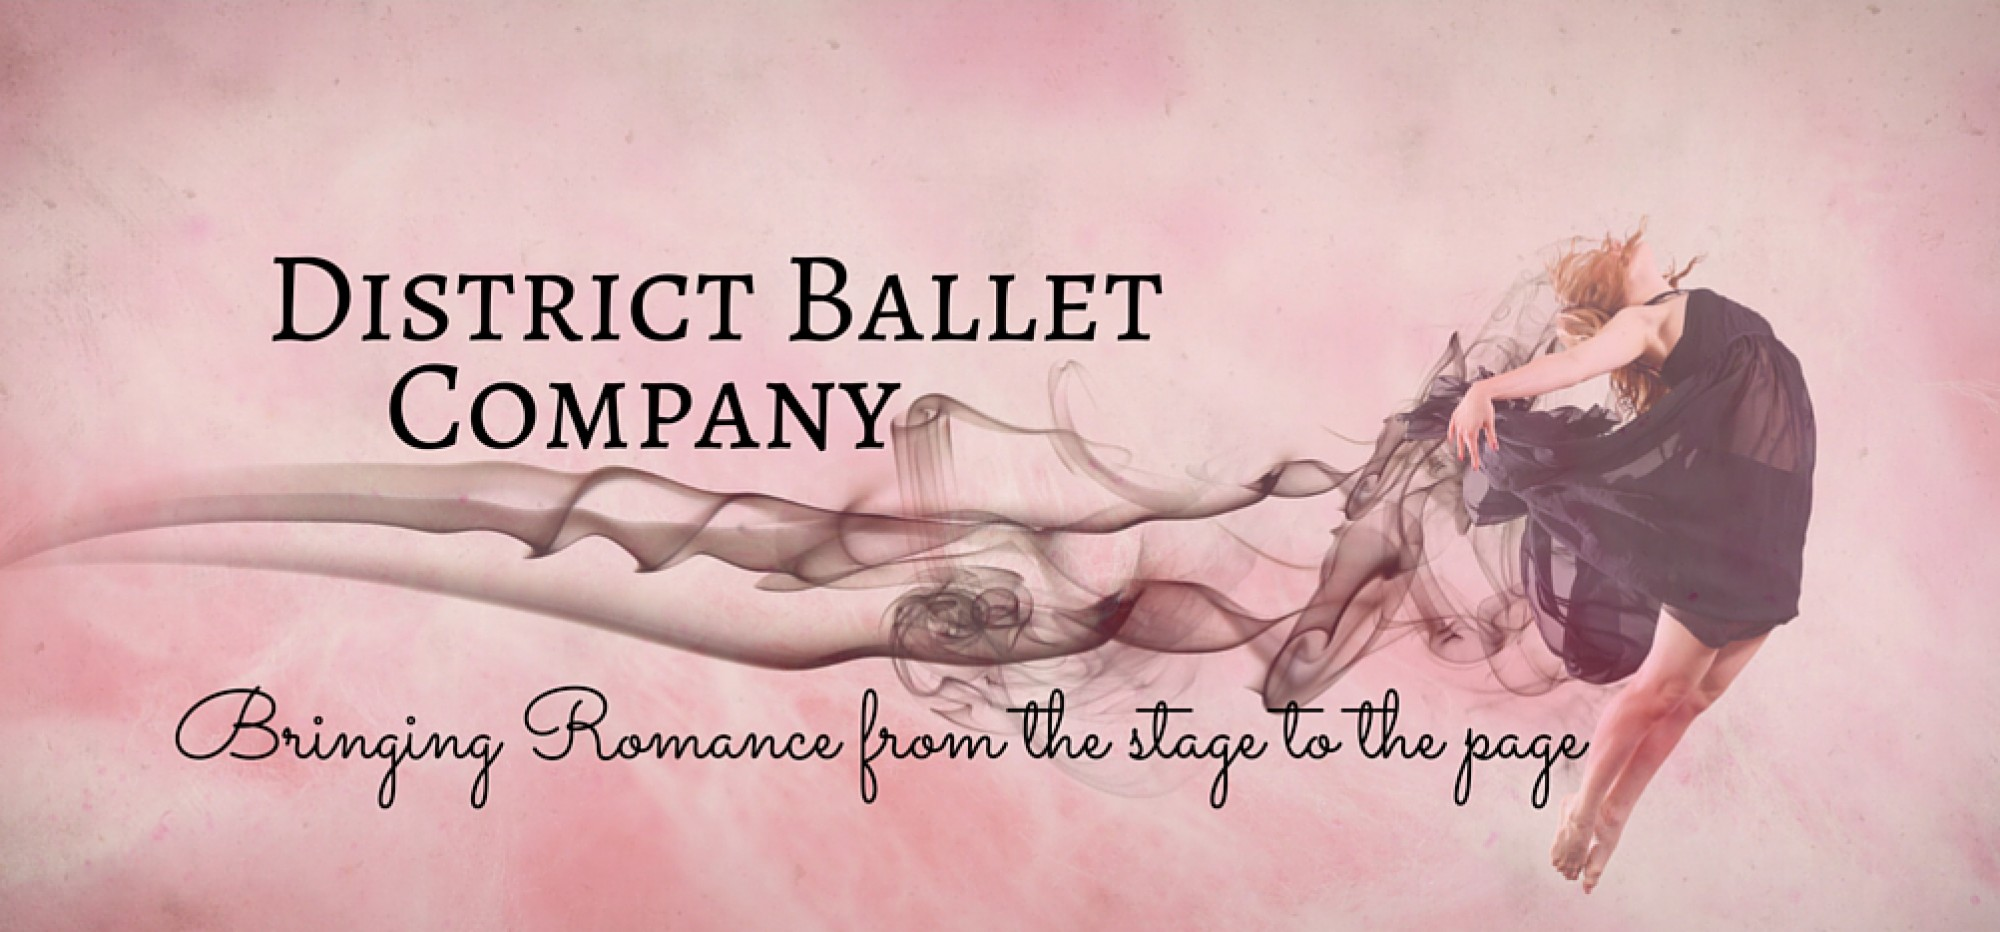 District Ballet Company